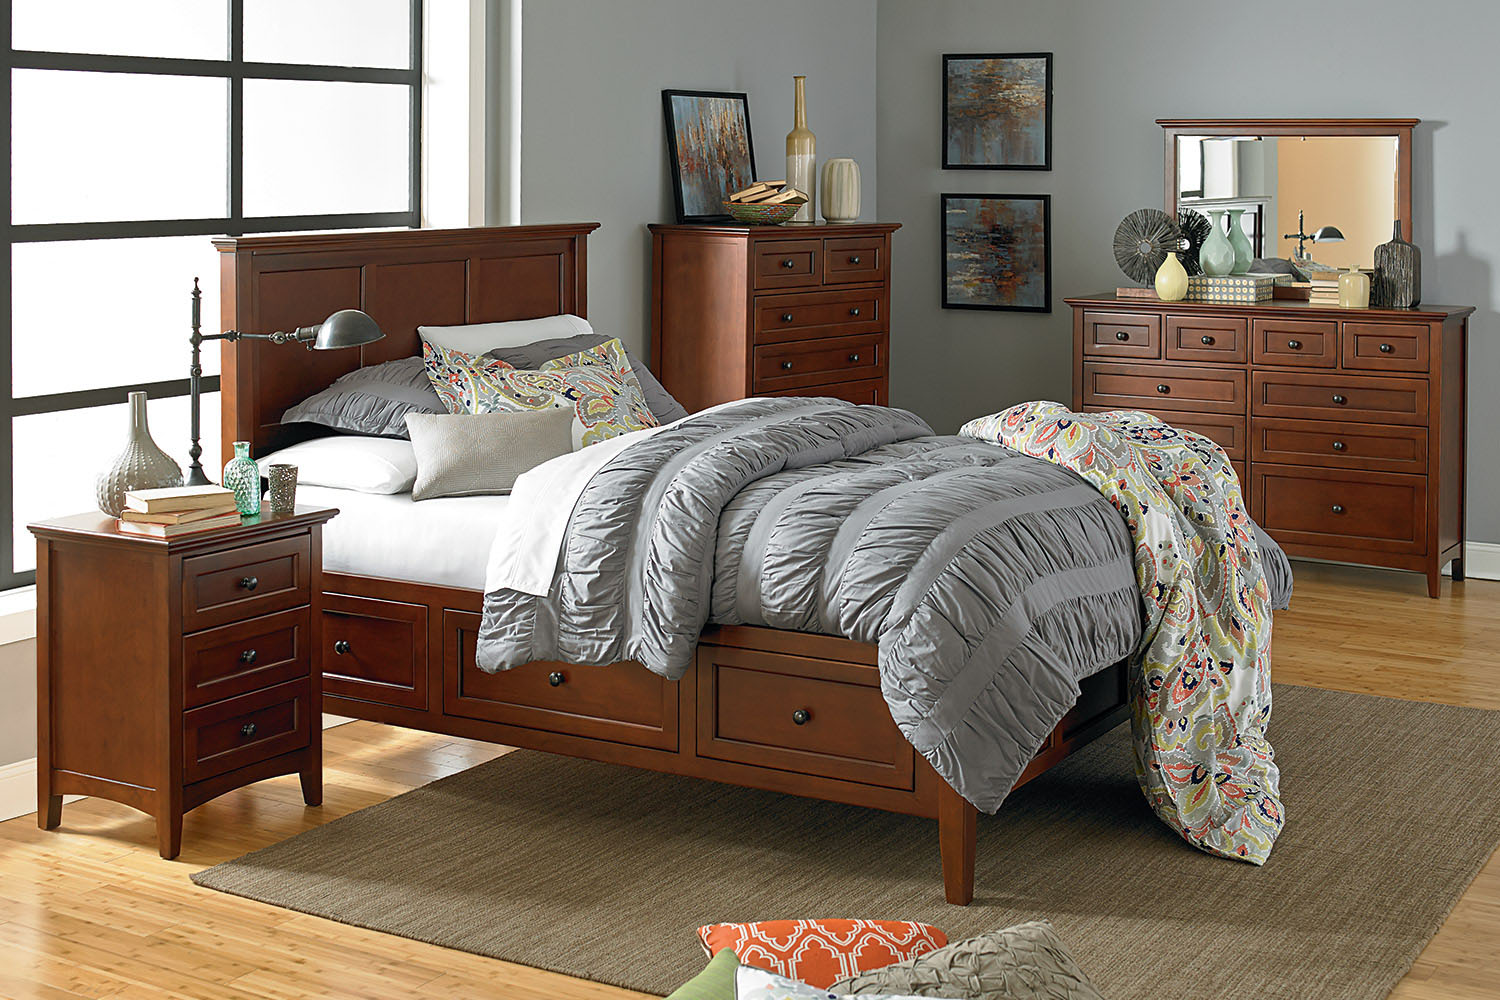 Mckenzie collection bedroom furniture headboards - Unfinished solid wood bedroom furniture ...